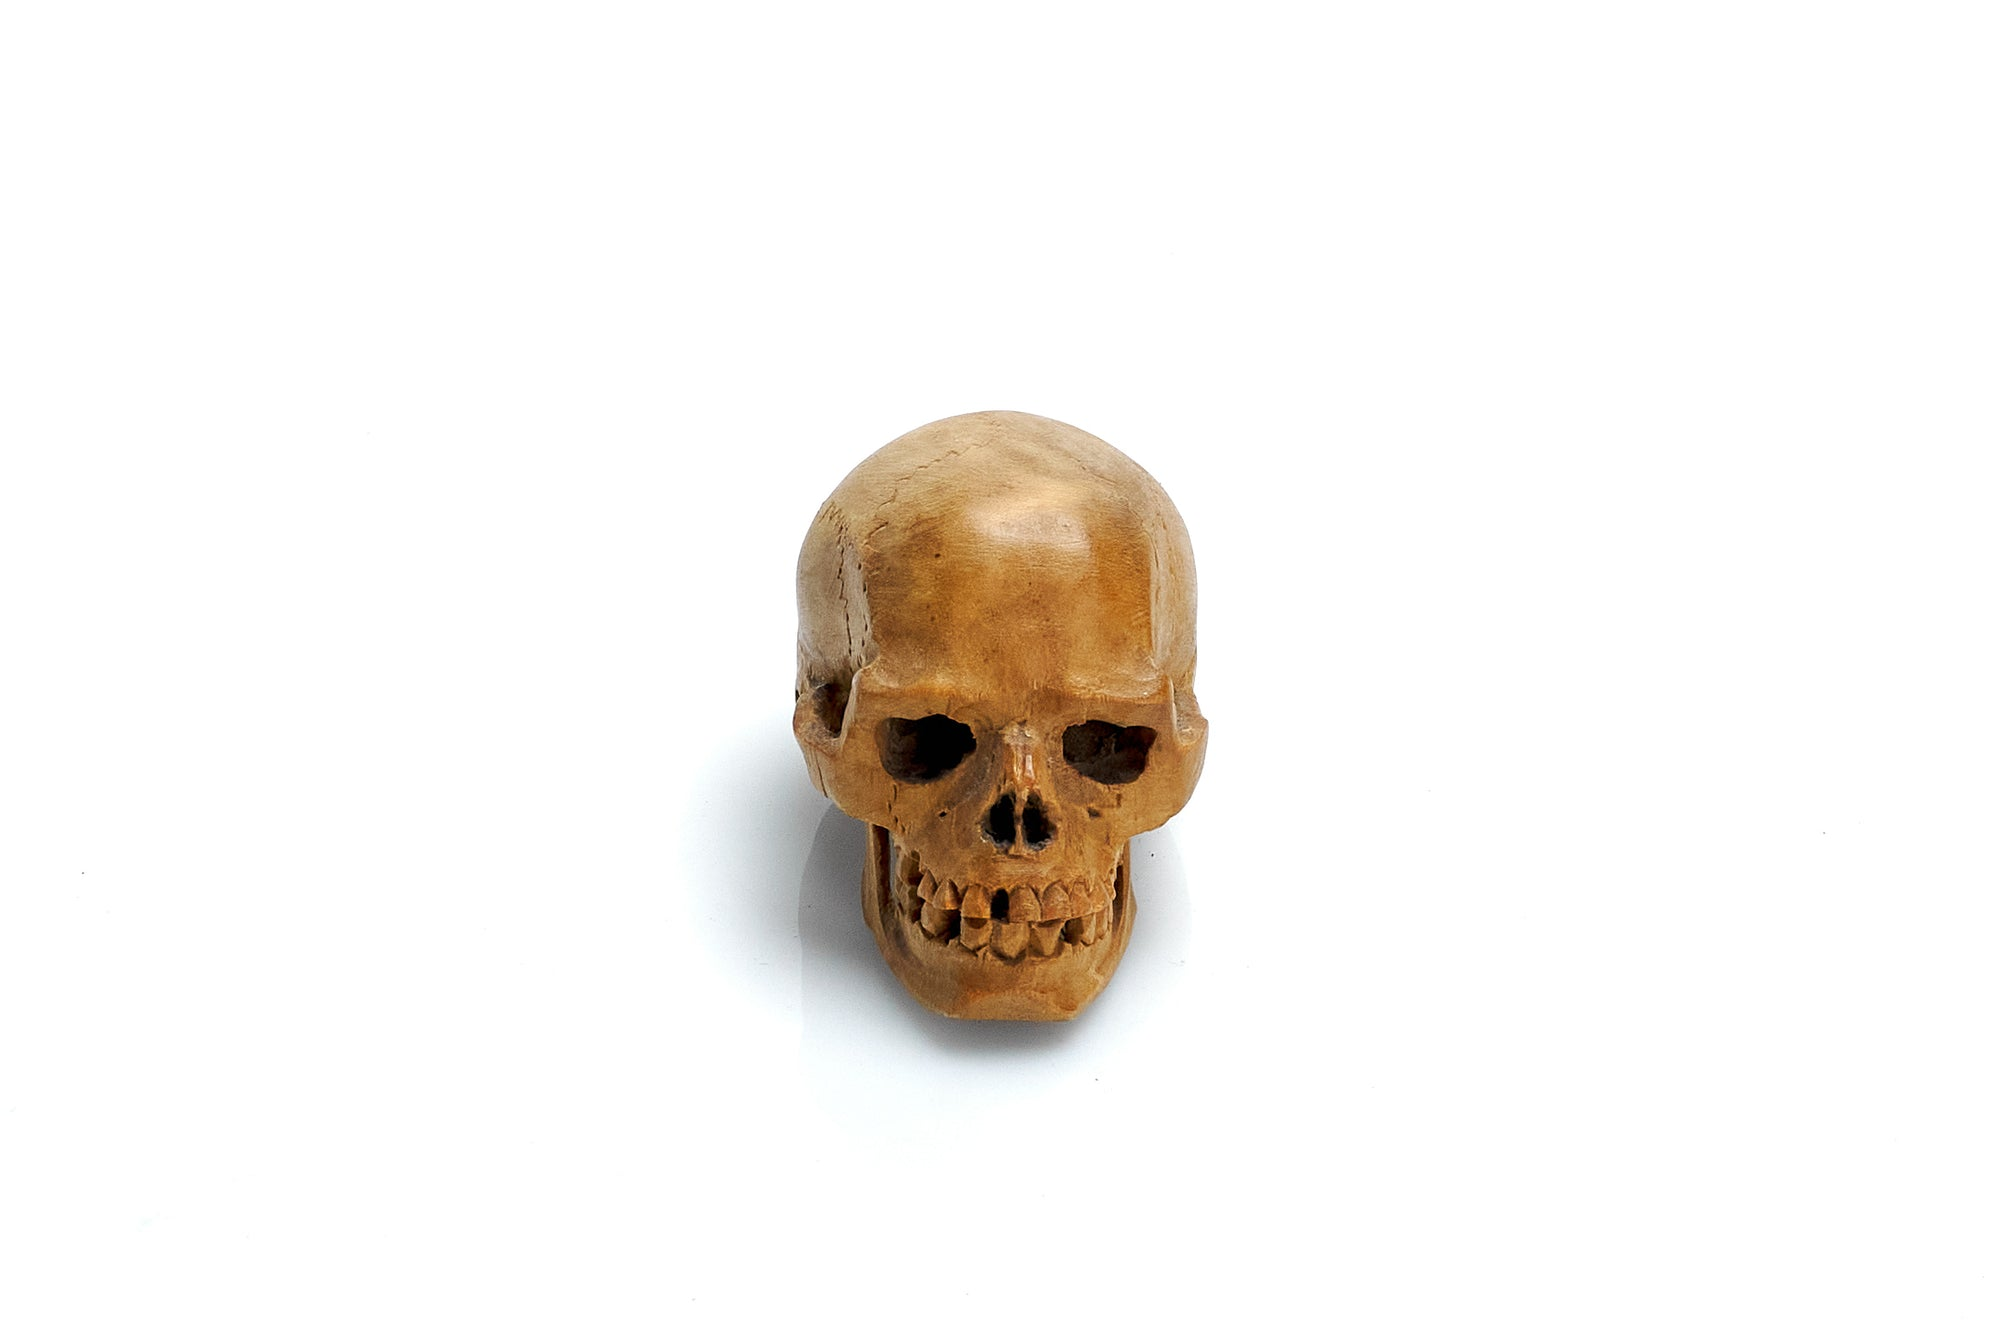 Carved Wooden Skull, Turn of the Century